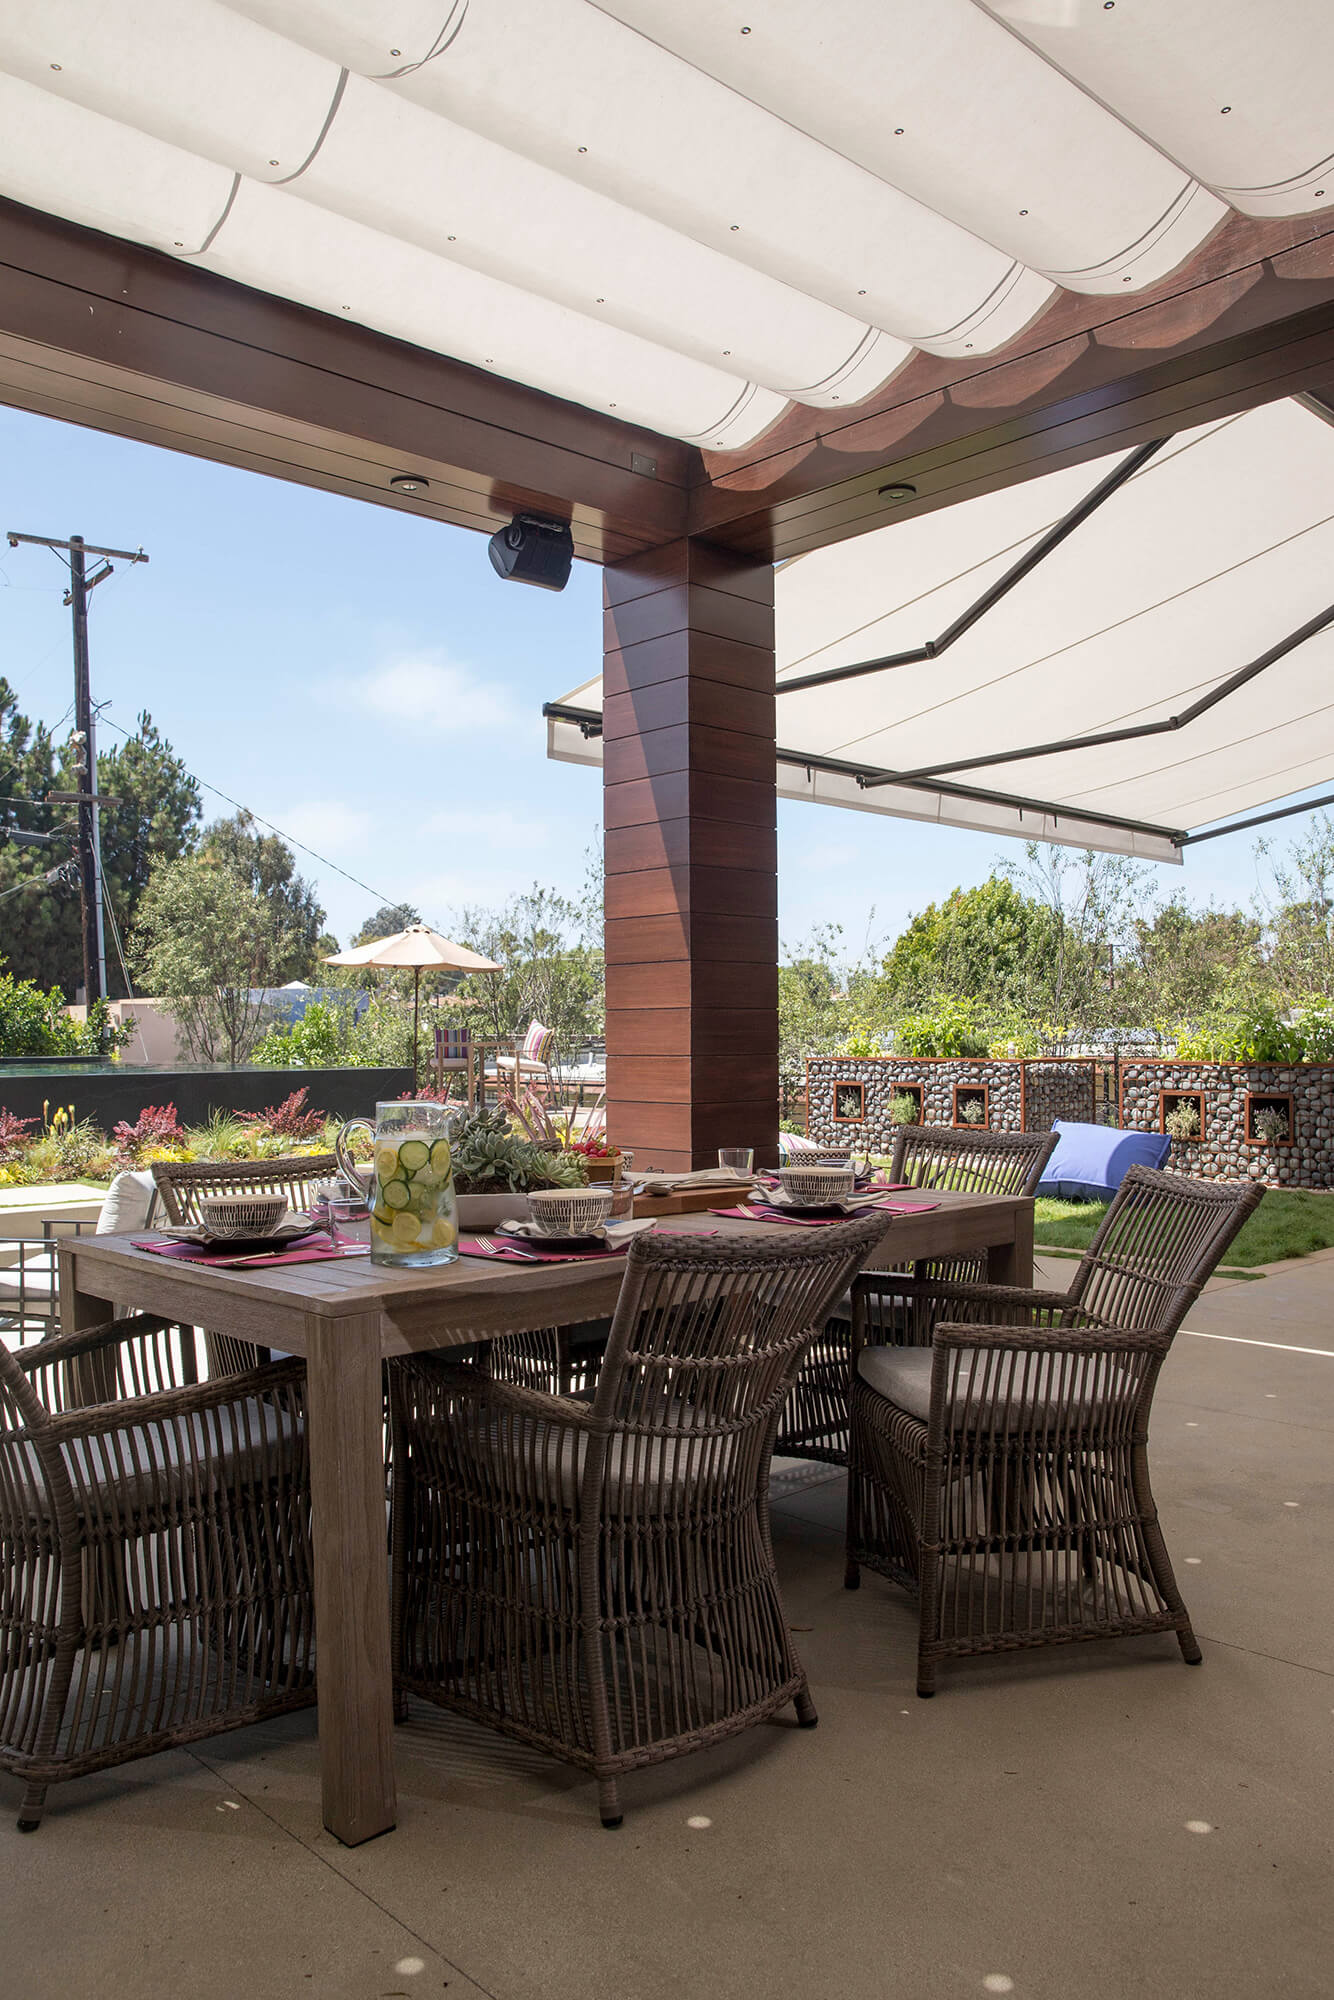 An Outdoor Patio Is Coverd By A Pergola And Retractable Awning Made Using Silver Sunbrella Fabric